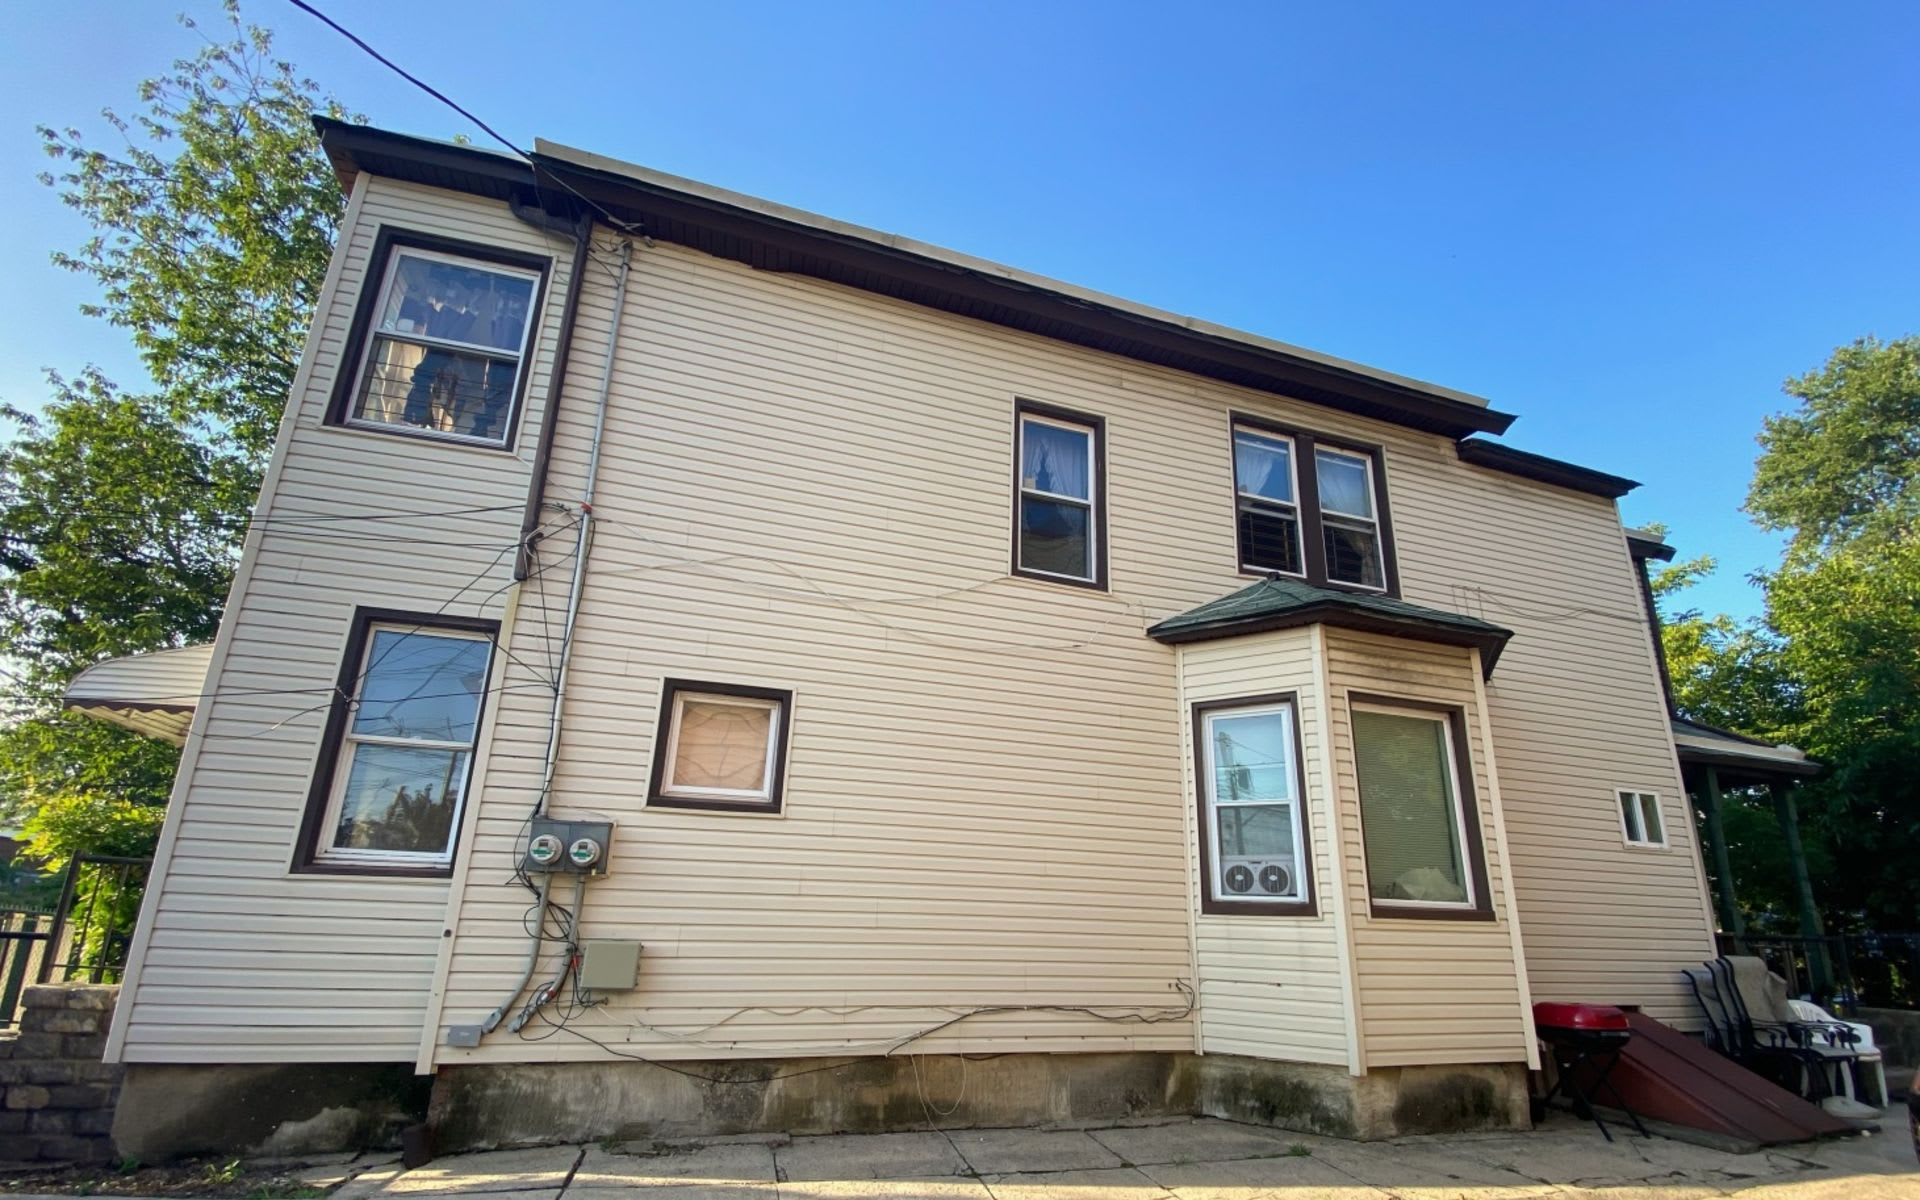 161 Campbell Ave photo